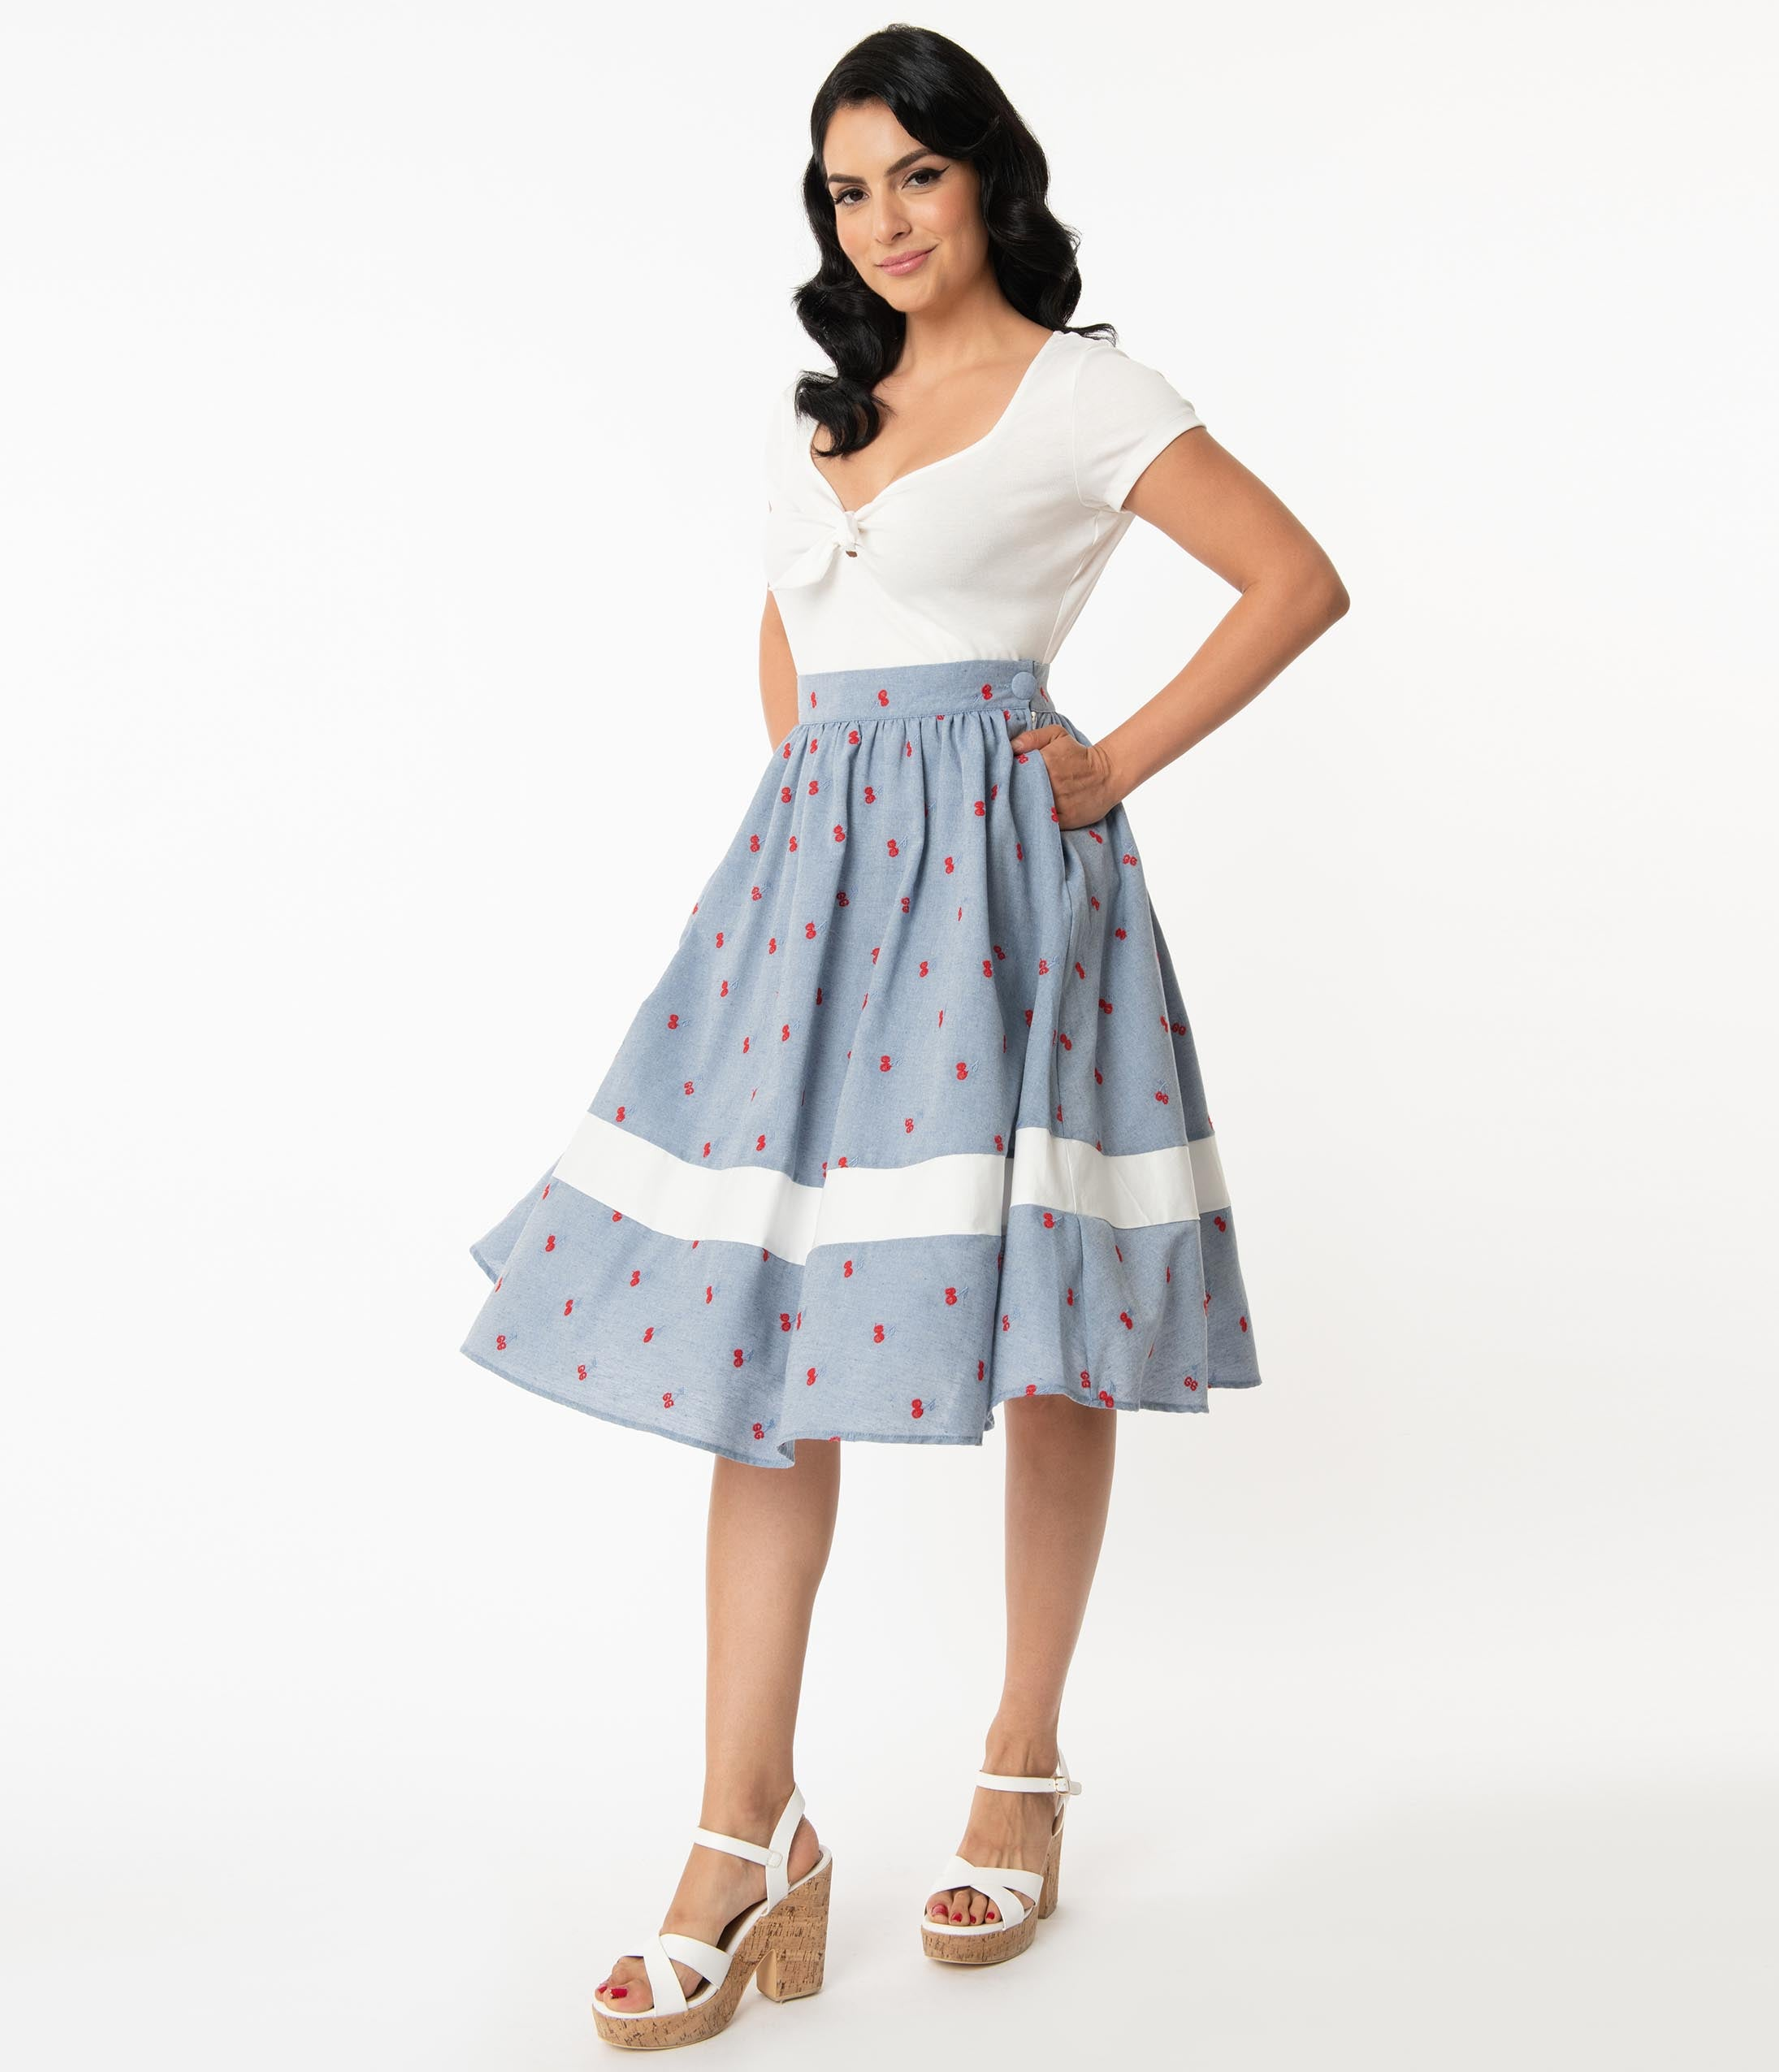 Vintage Skirts | Retro, Pencil, Swing, Boho Unique Vintage Chambray  Cherry Sawyer Swing Skirt $68.00 AT vintagedancer.com